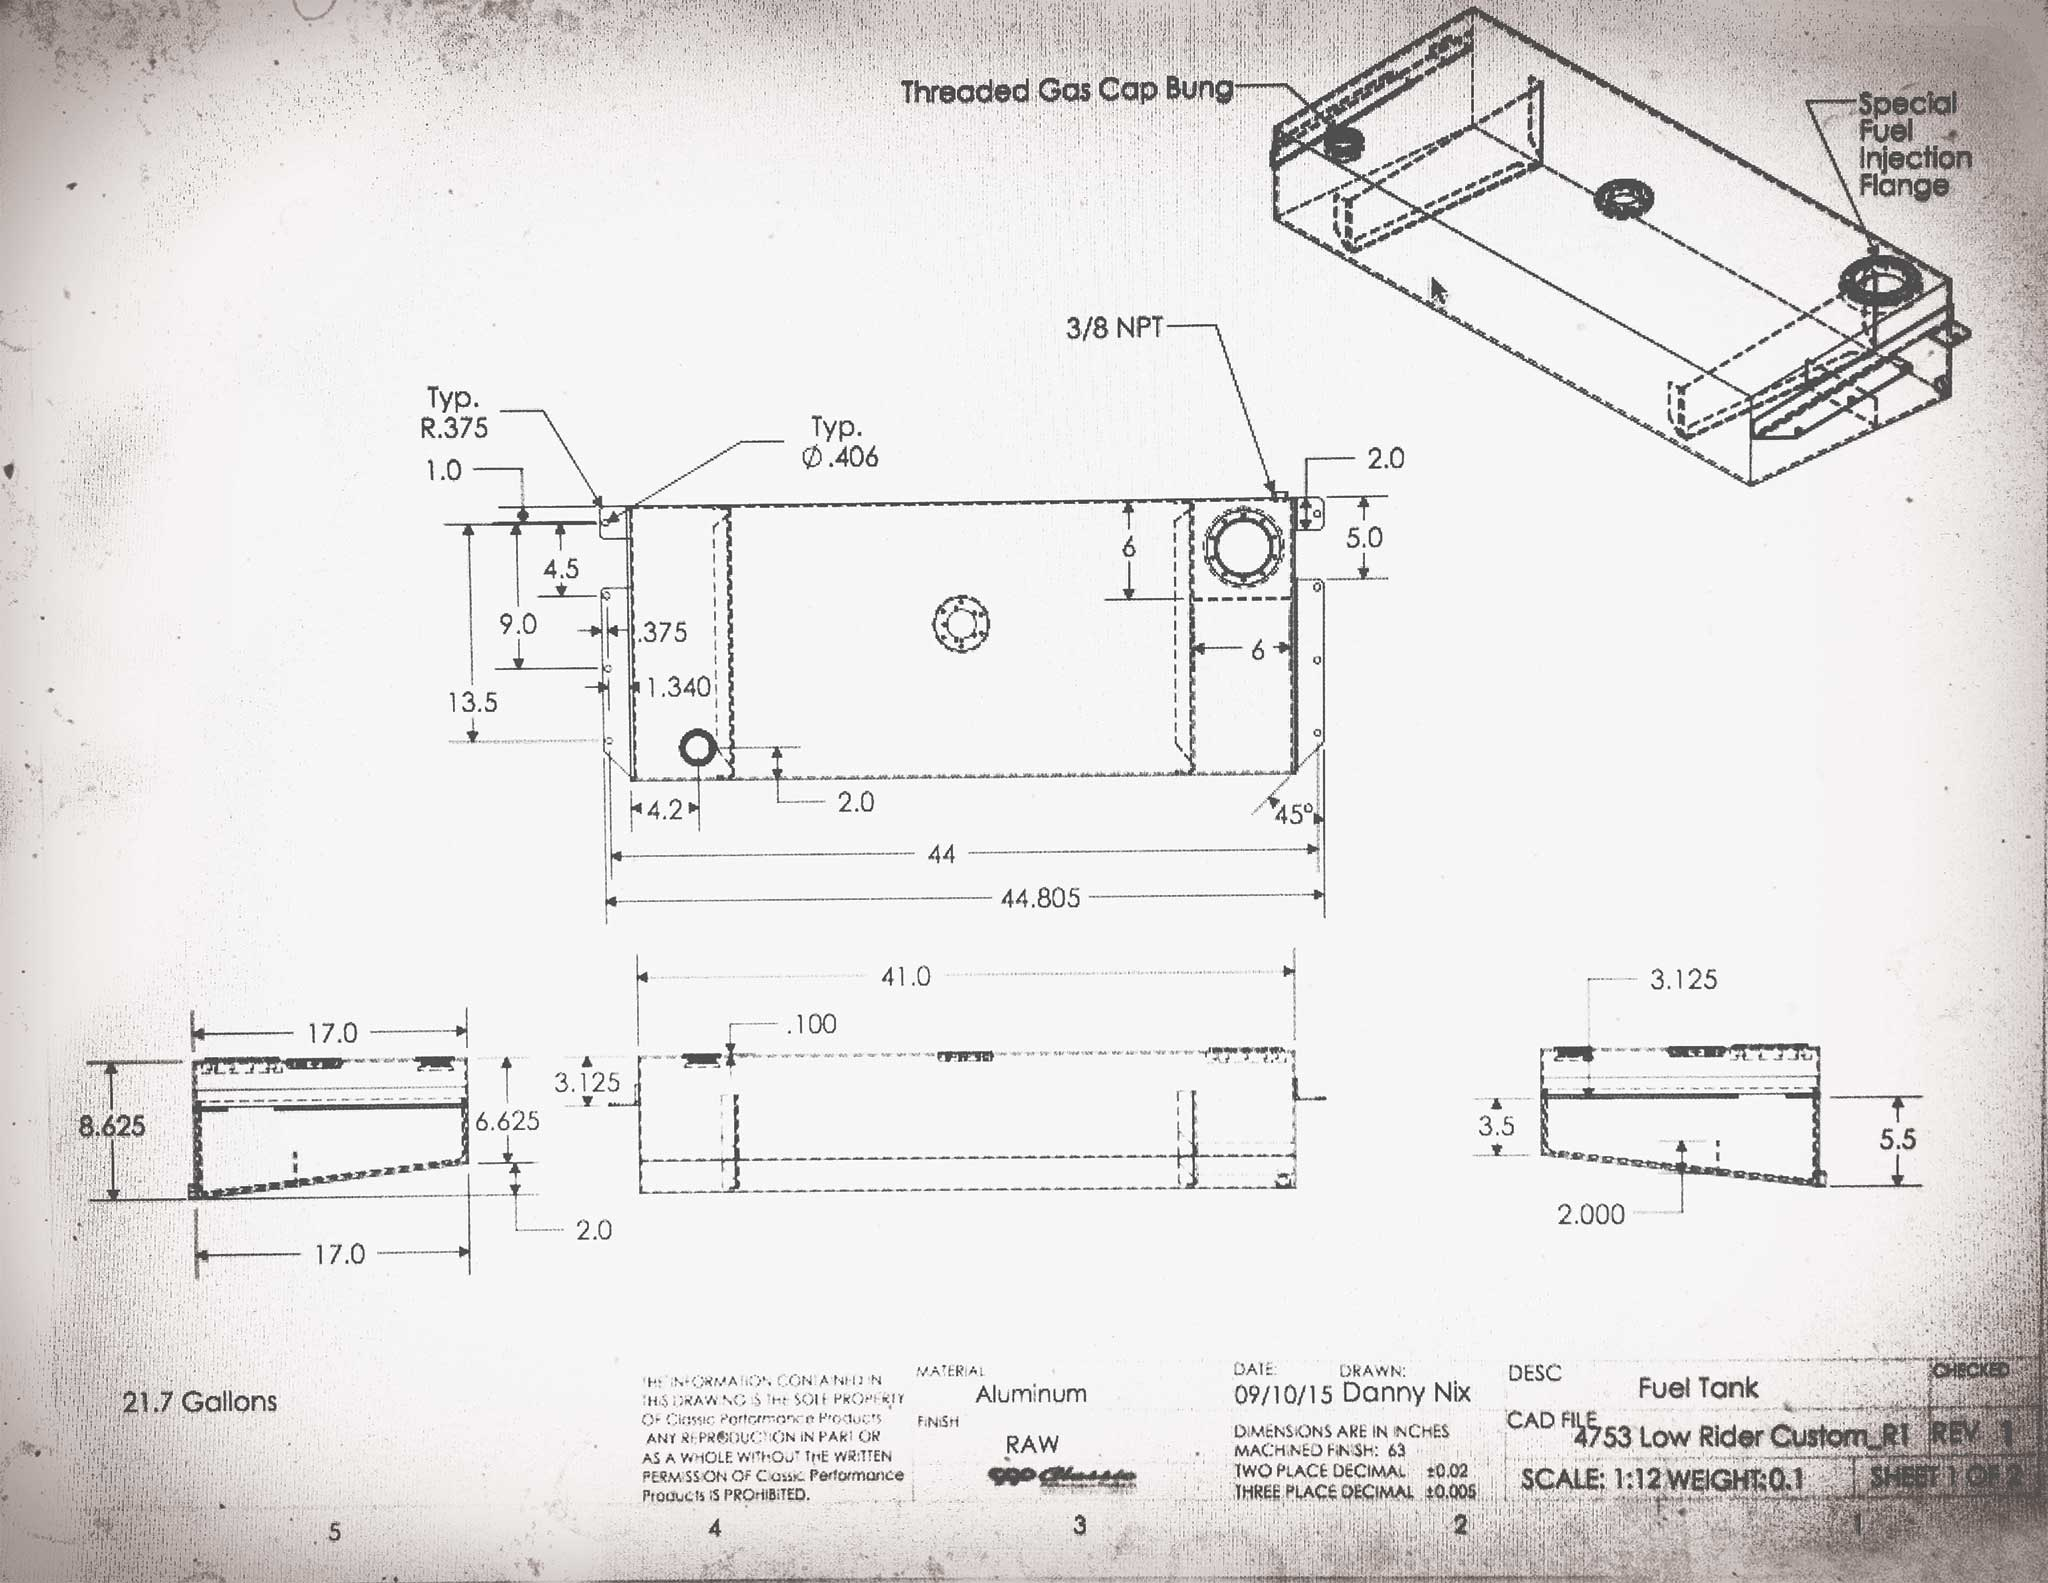 relocating a fuel tank passing gas lowrider Above Ground Storage Tank Sc…  Pressure Tank Schematic fuel tank schematic diagram #45